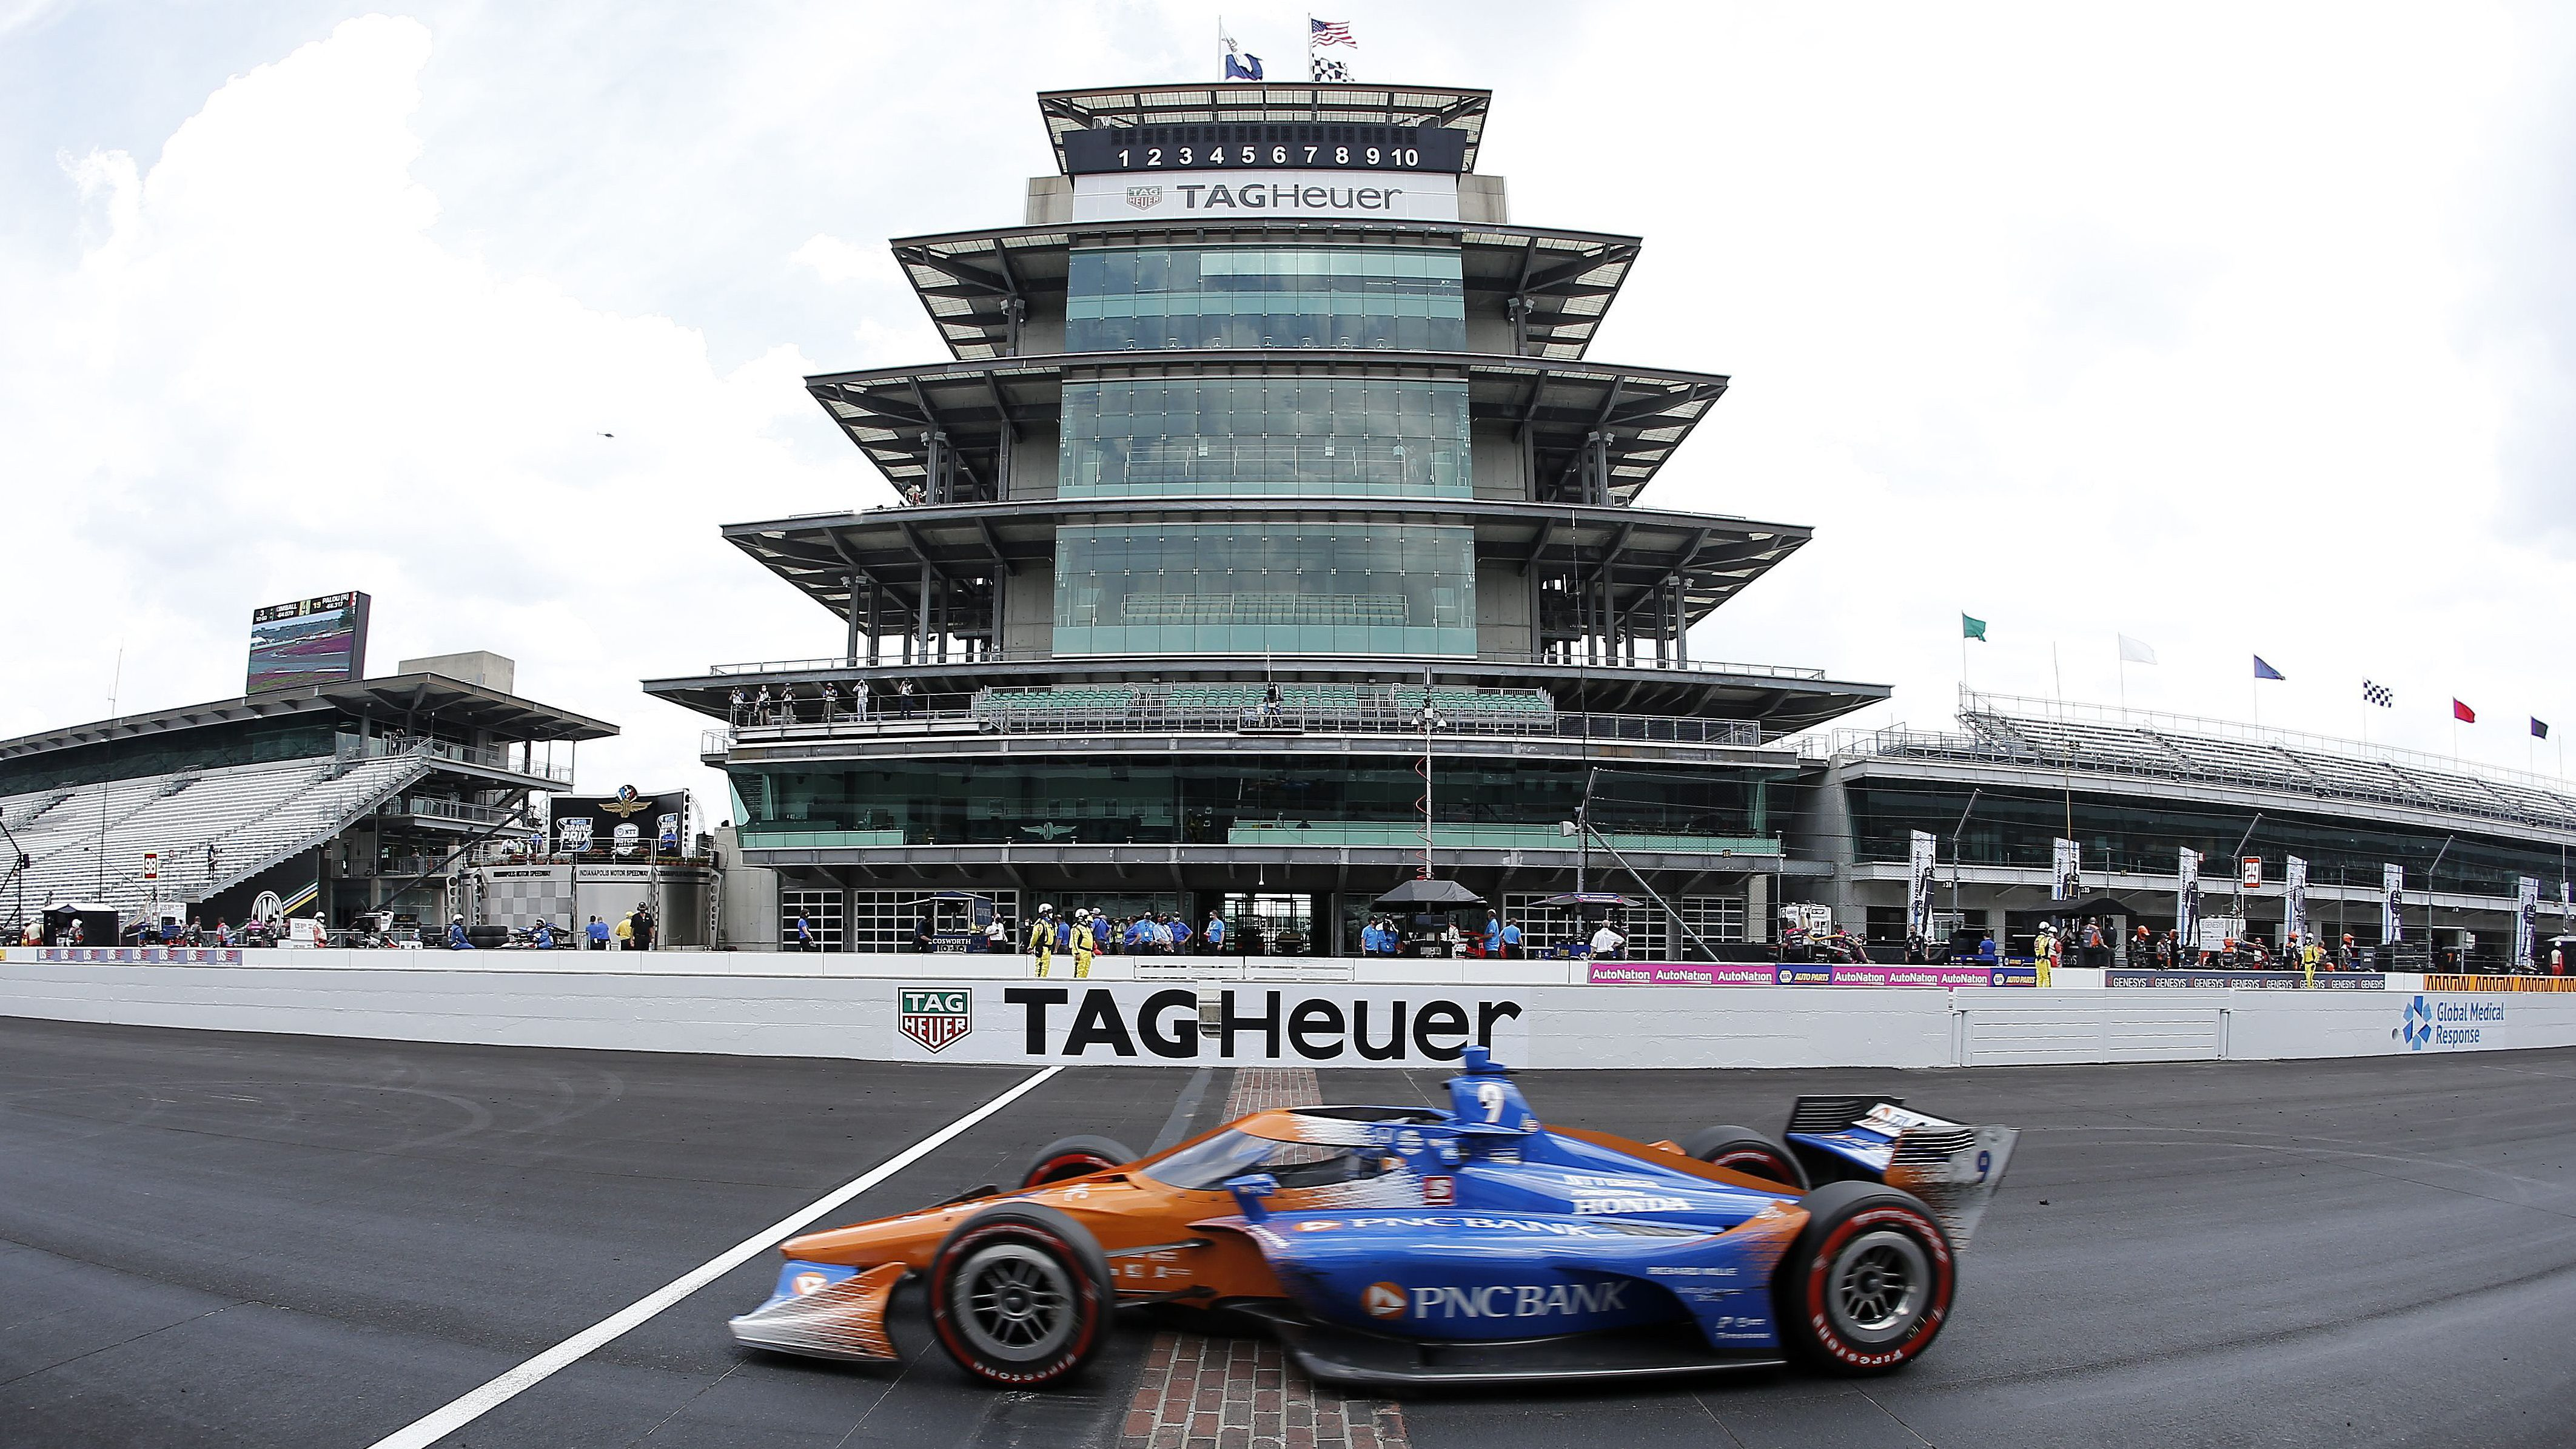 IndyCar race weekend doubleheader schedule at IMS road course